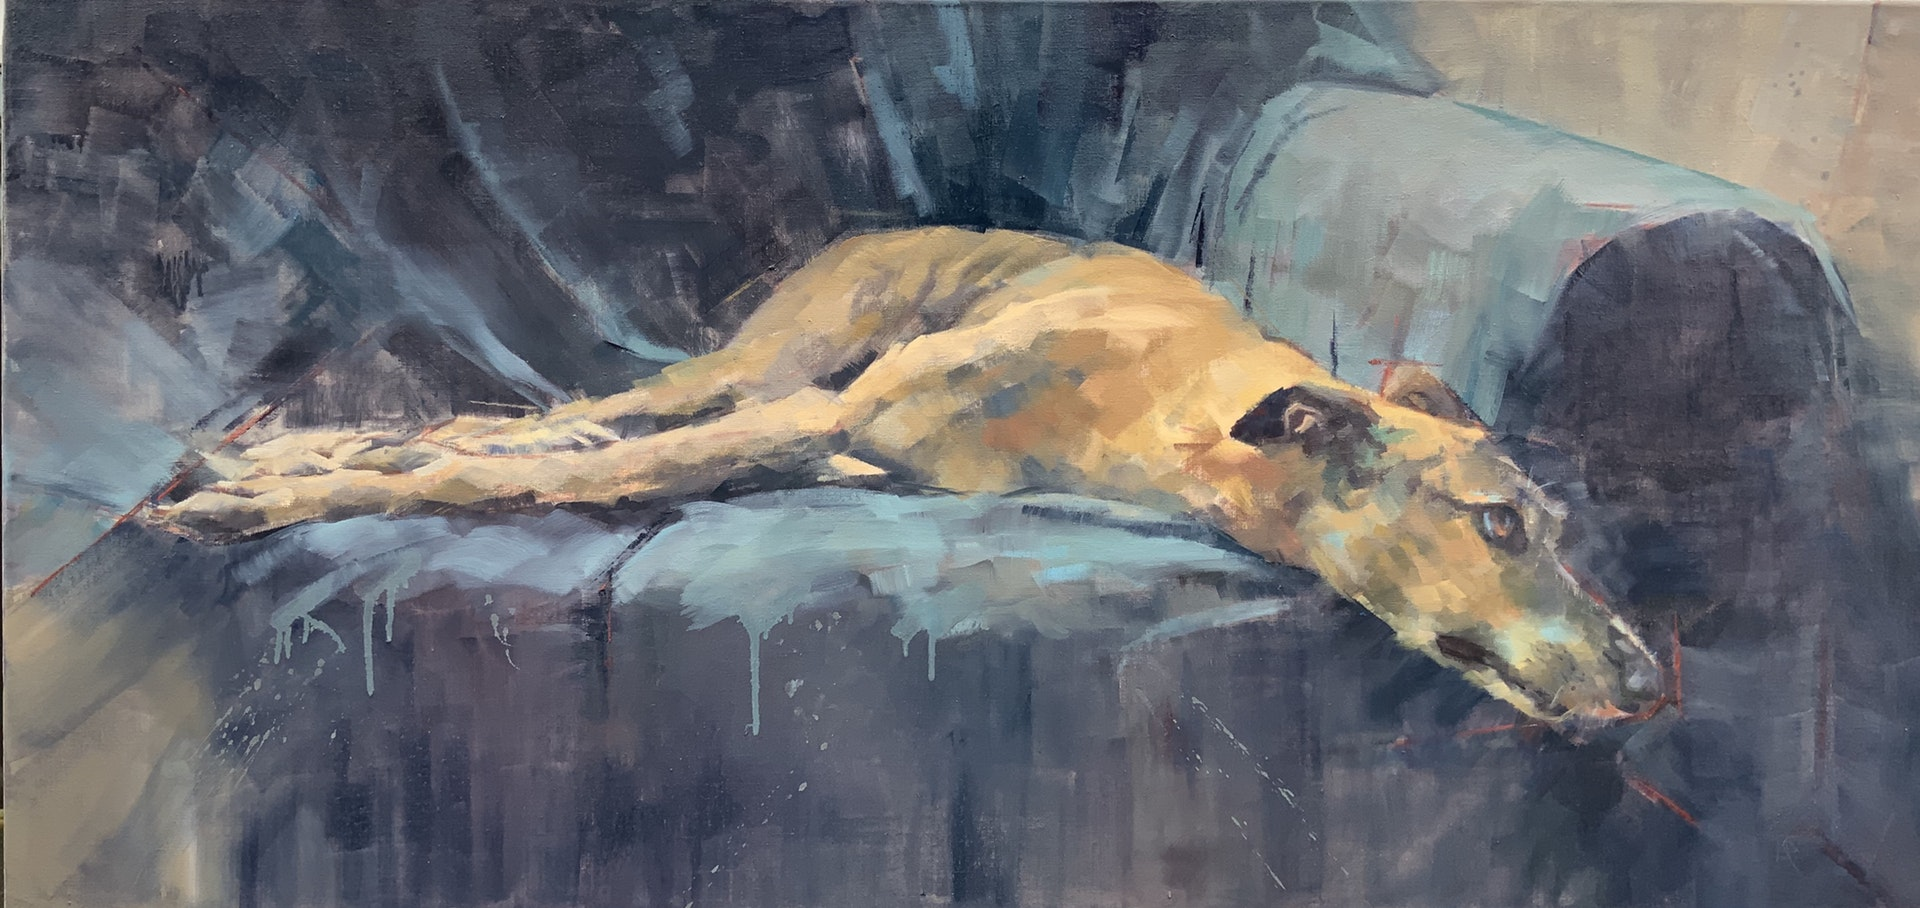 'A Dogs Life', Lisa Puhlhofer, Oil on linen, 105 x 50 cm